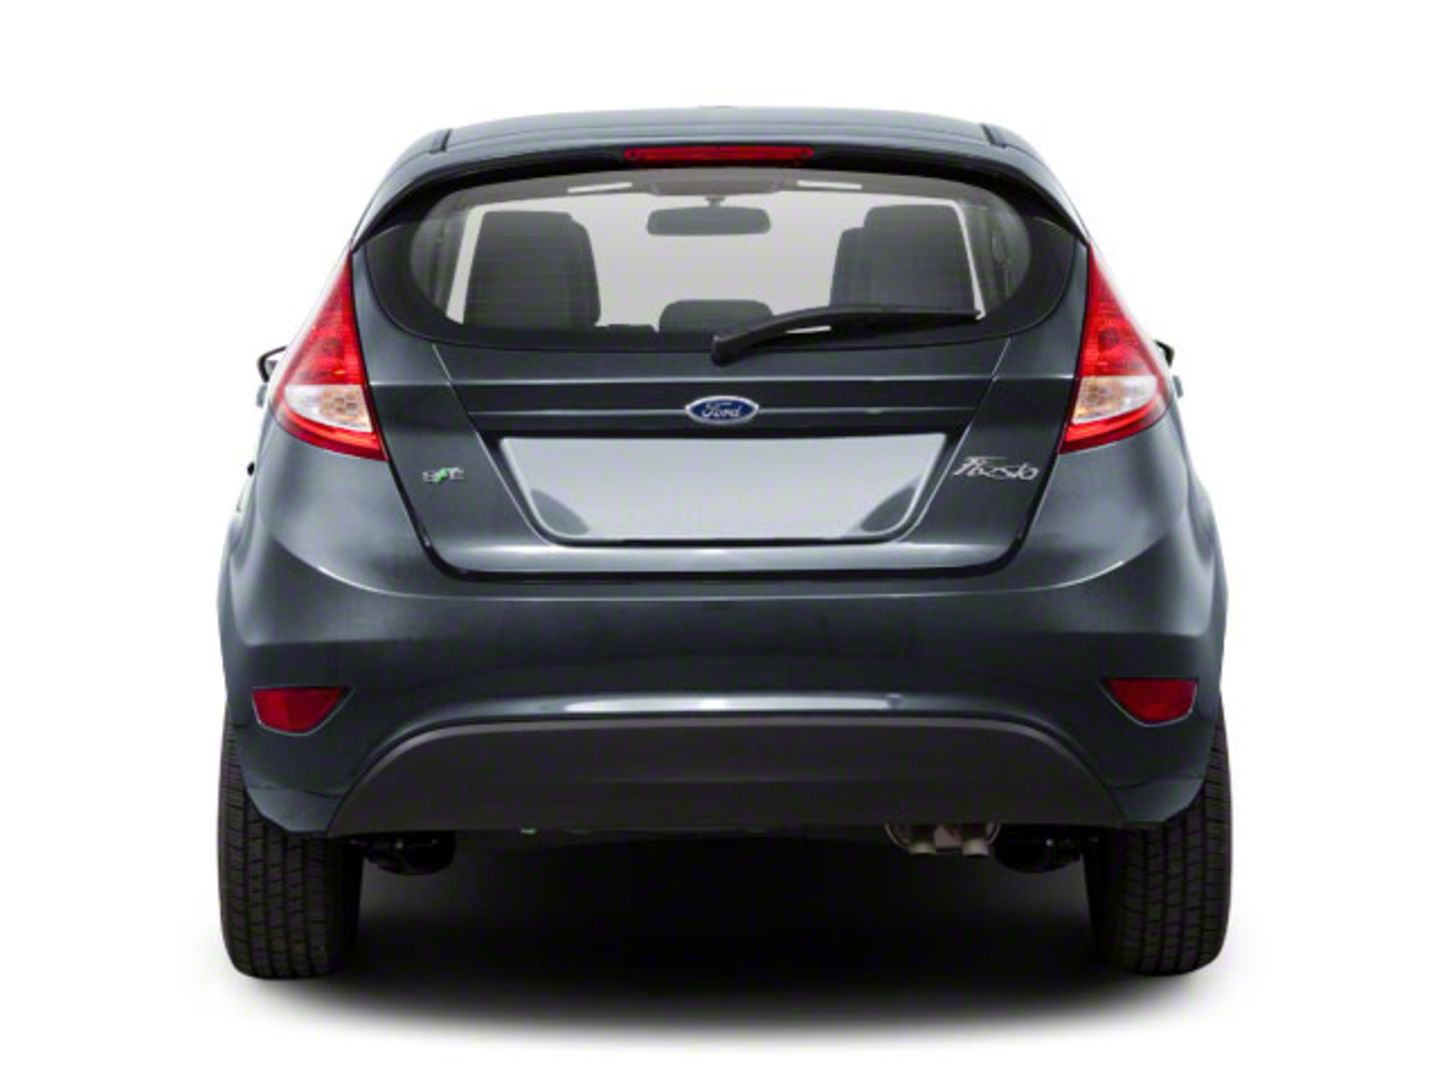 2012 Ford Fiesta SES for sale in Mississauga, Ontario